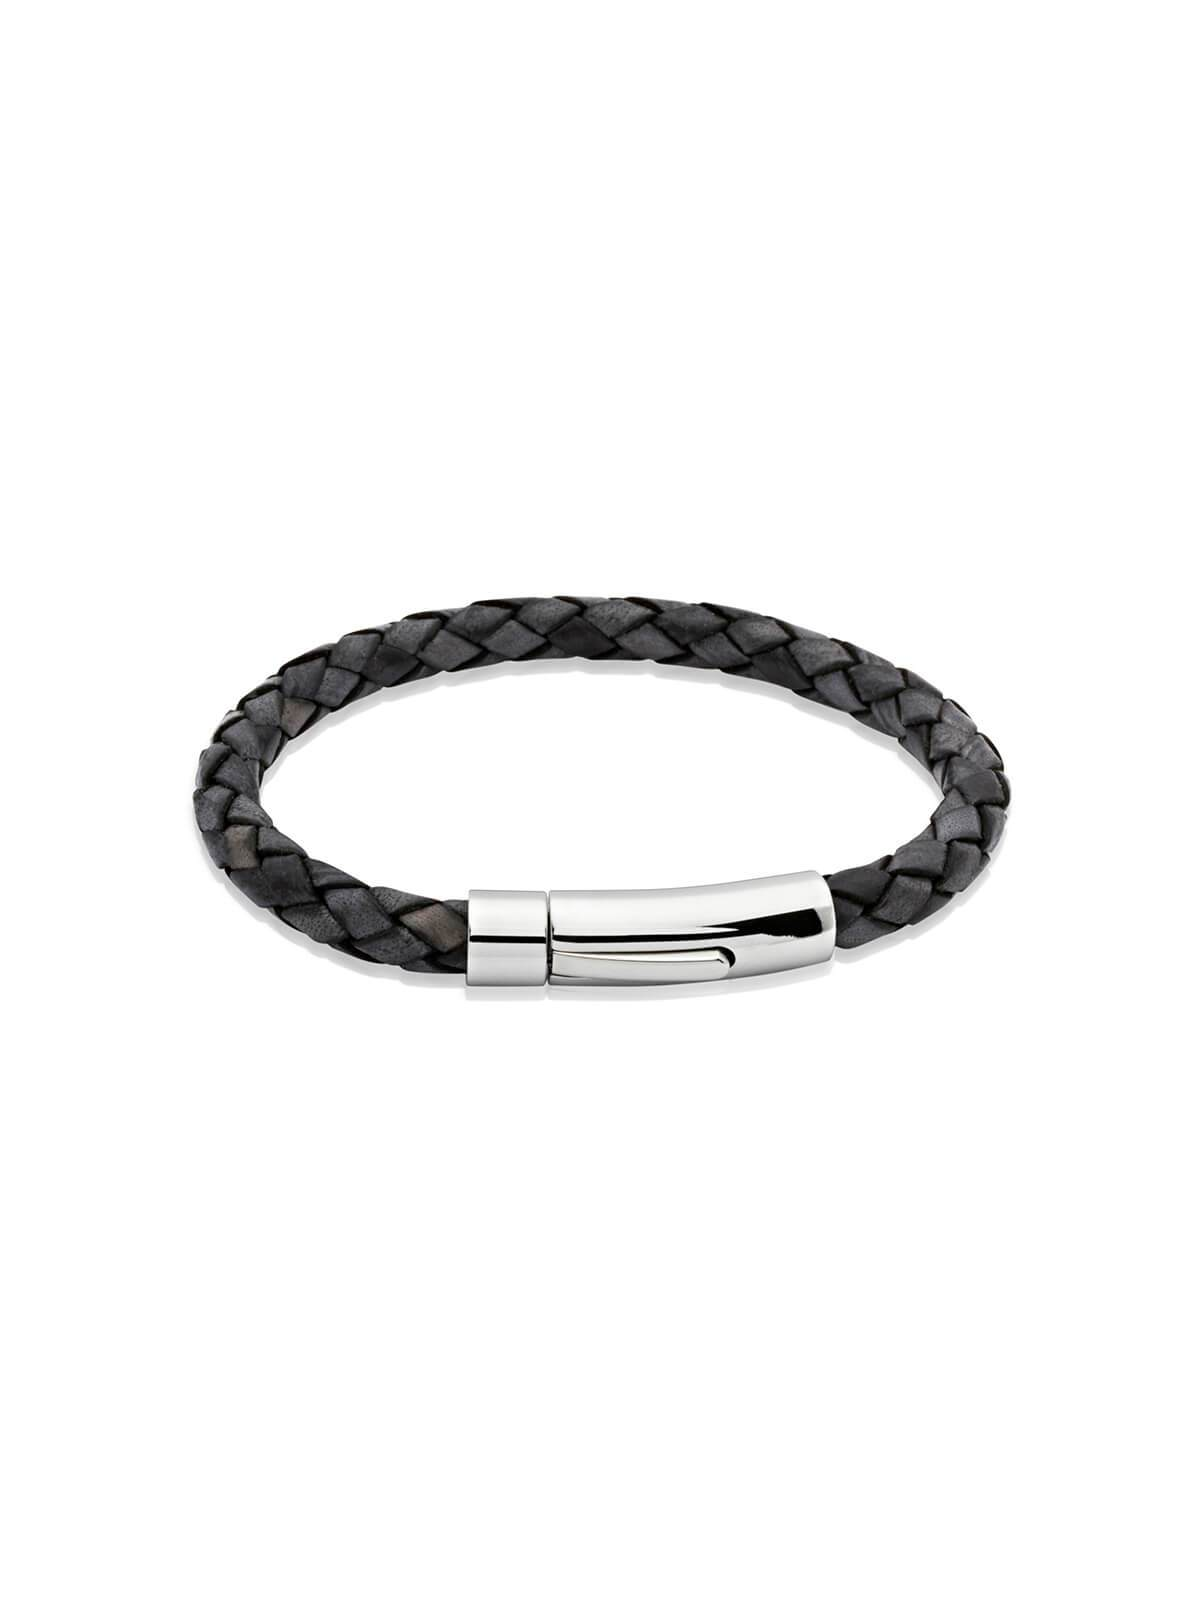 Unique & Co. 21cm Antique Black Leather Bracelet A40ABL/21CM